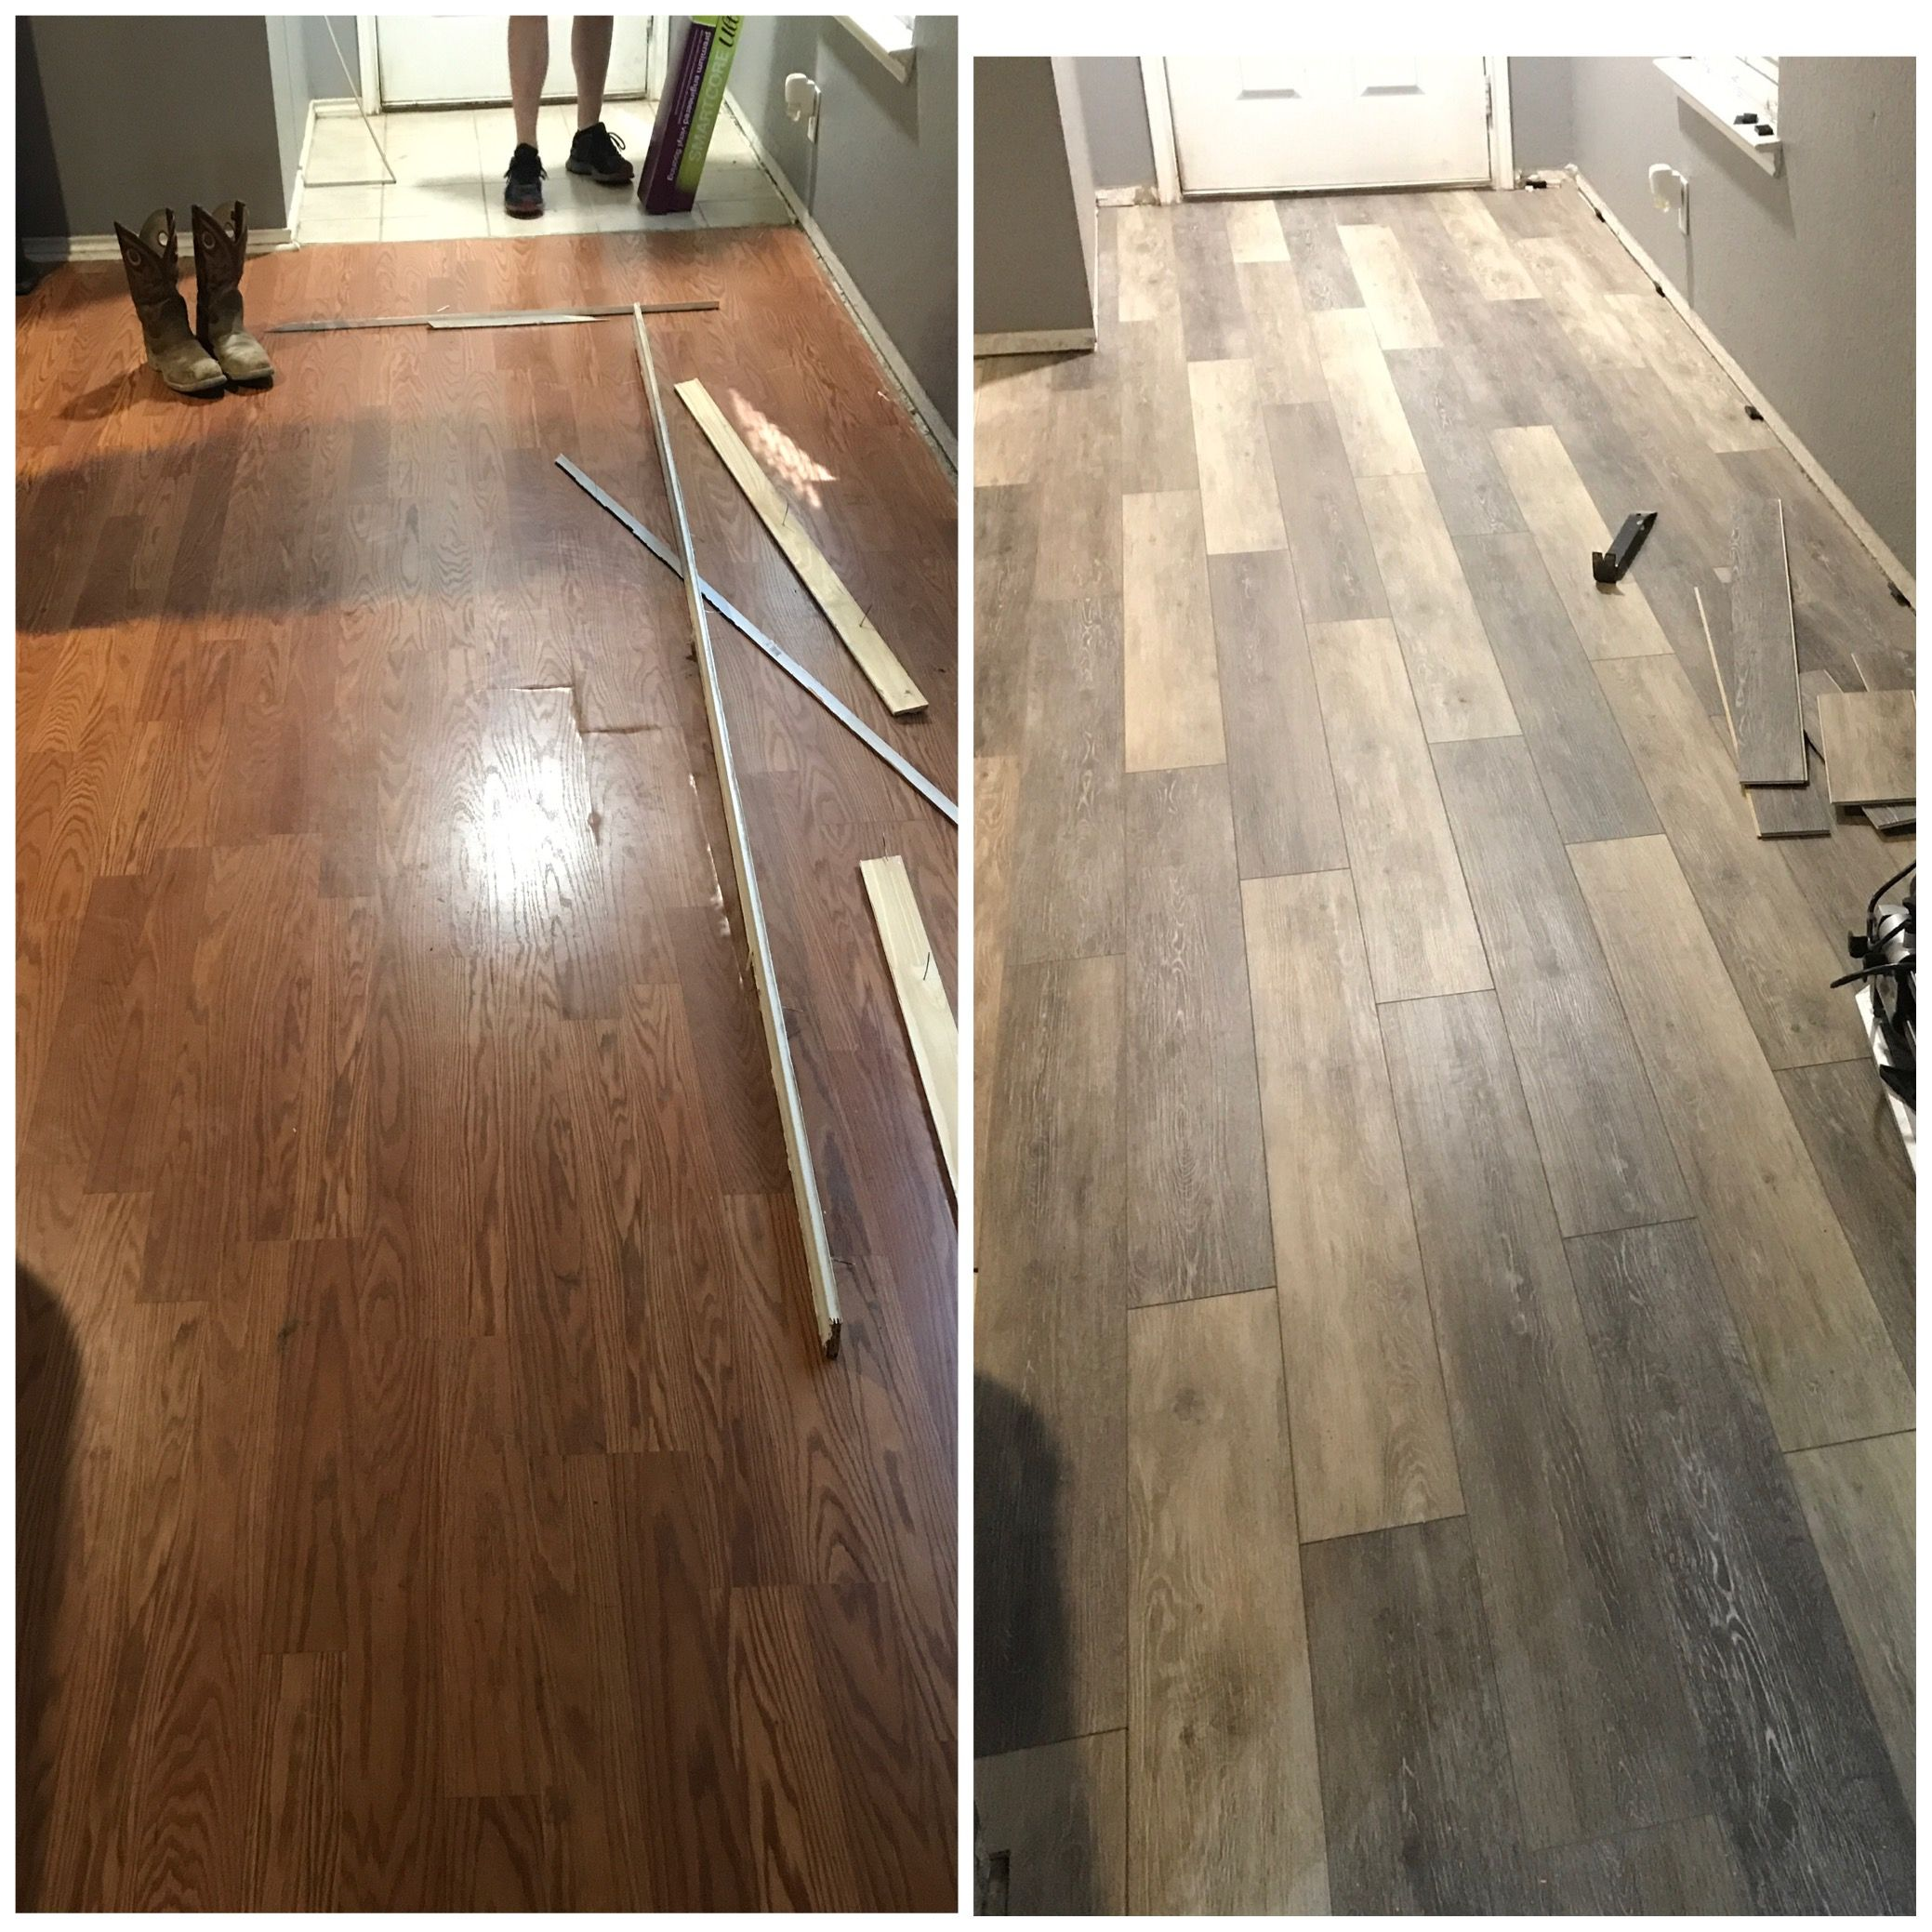 Smartcore Ultra Vinyl Flooring Before And After Color Woodford Oak Vinyl Flooring Hardwood Floor Colors Flooring